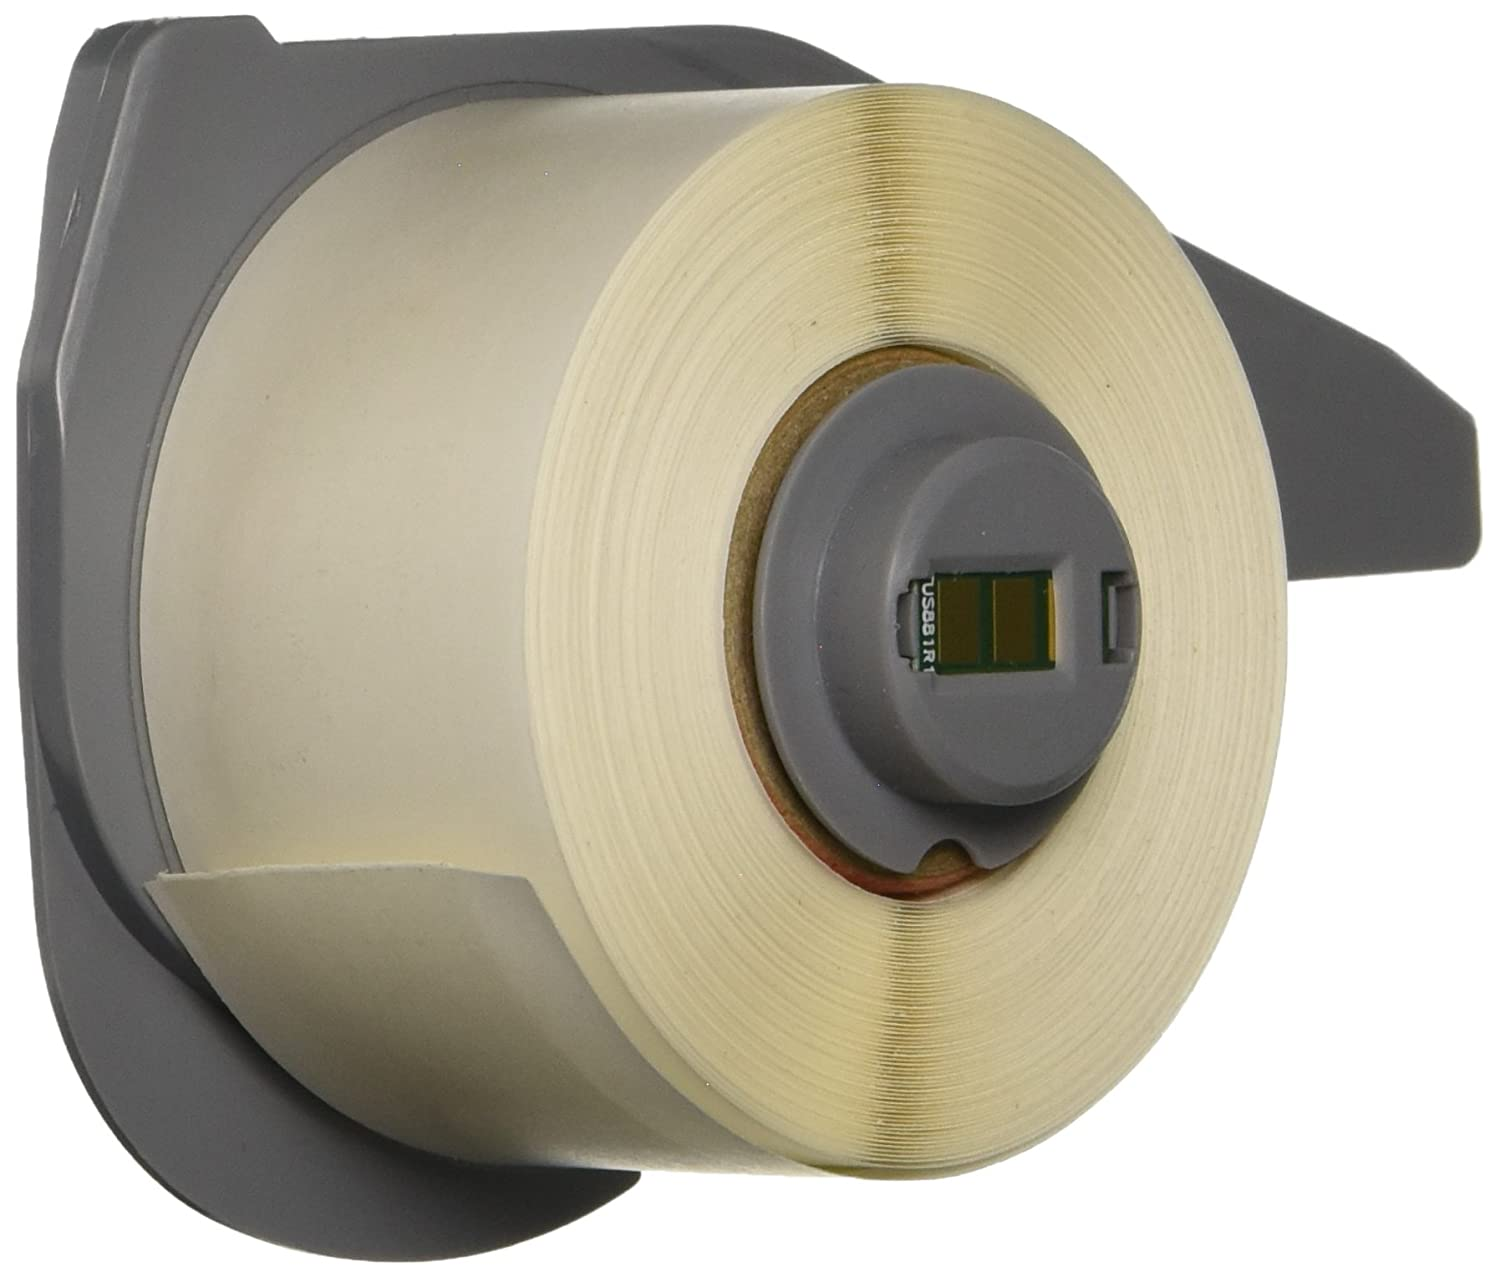 Brady M71C-500-498 Repositionable Vinyl Cloth BMP71 Labels White 1 Roll, 1 Roll per Package